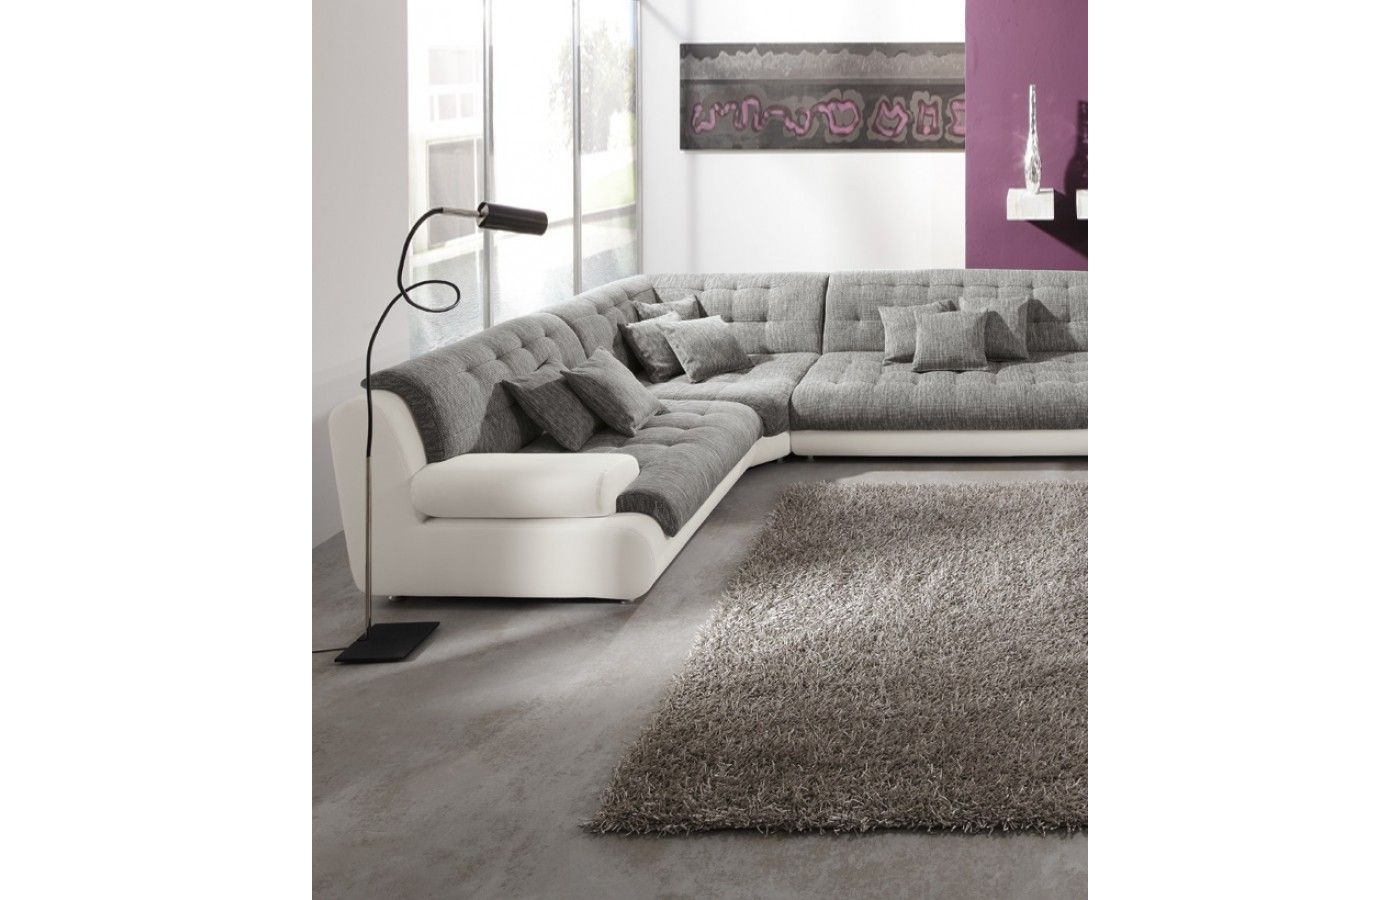 Superb Materialmix Wohnlandschaft Leder Stoff CHILLOUT TWO Exklusiv bei Sofa Dreams Wohnlandschaft CHILLOUT Pinterest Sofas and Dreams